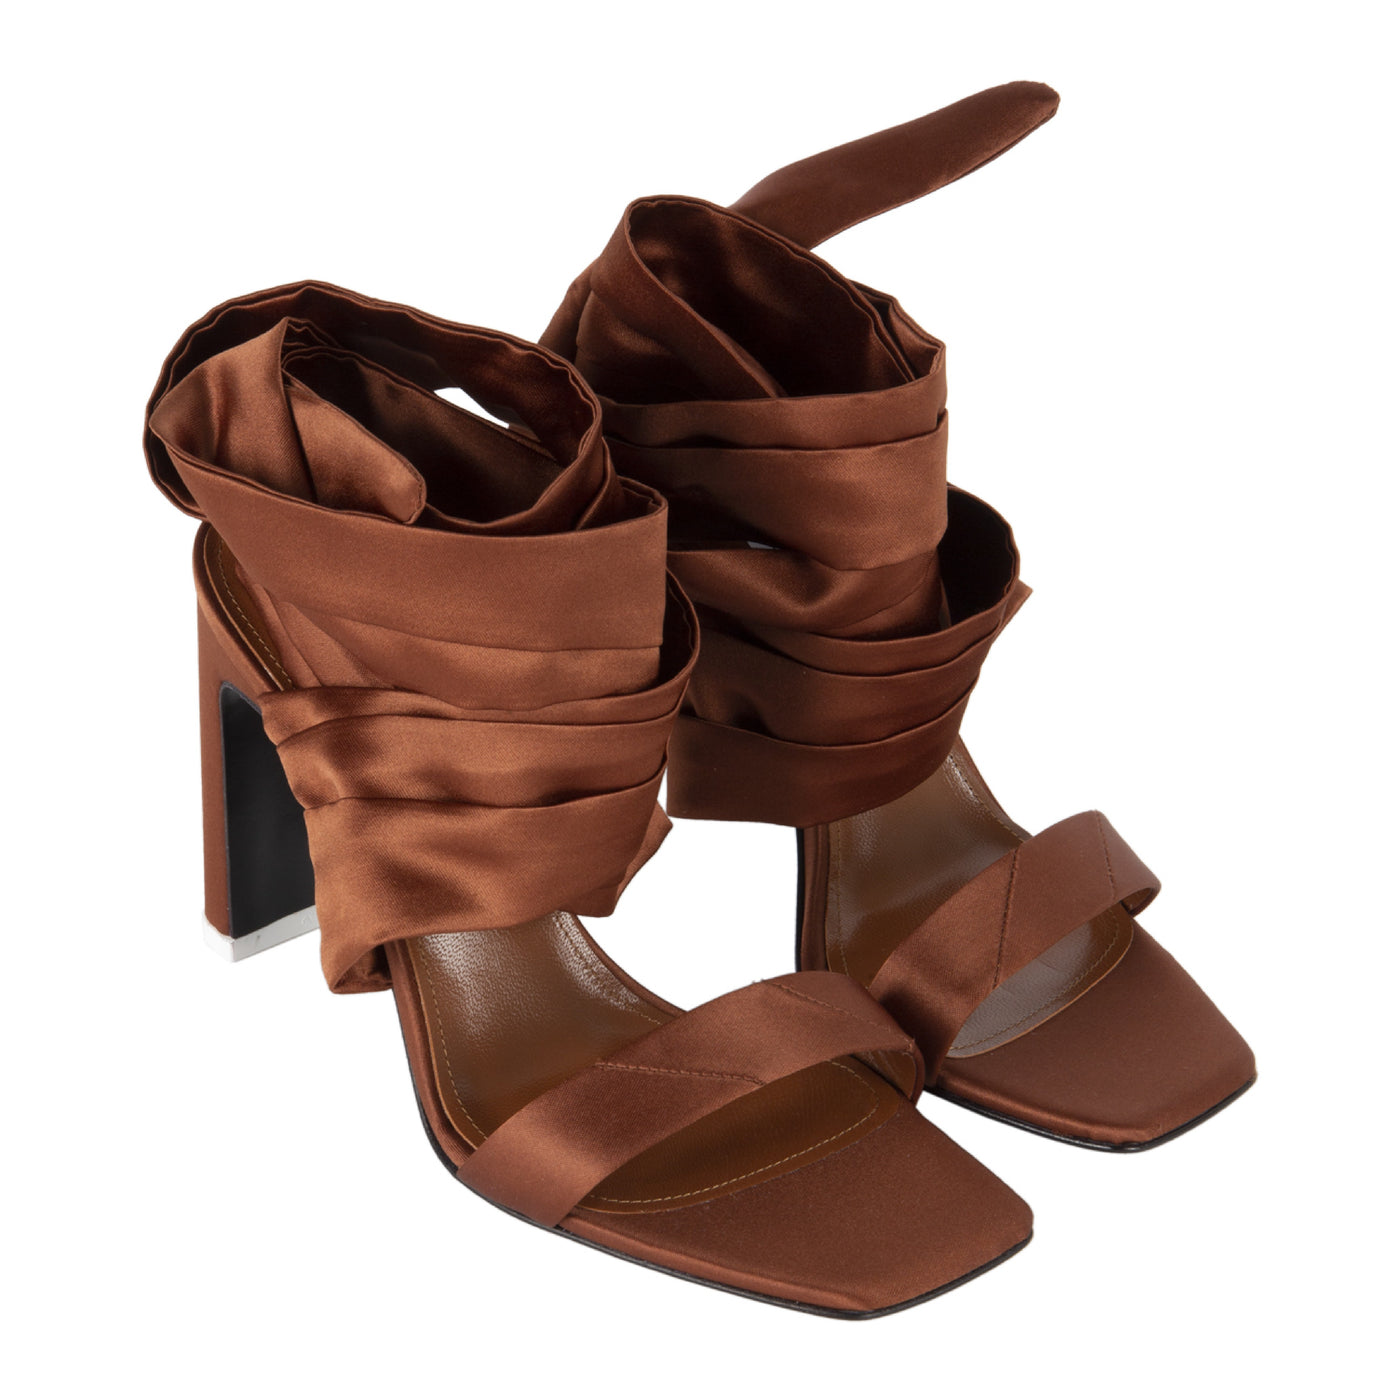 Load image into Gallery viewer, ATTICO HIGH HEEL SATIN ANKLE STRAP SANDAL BROWN